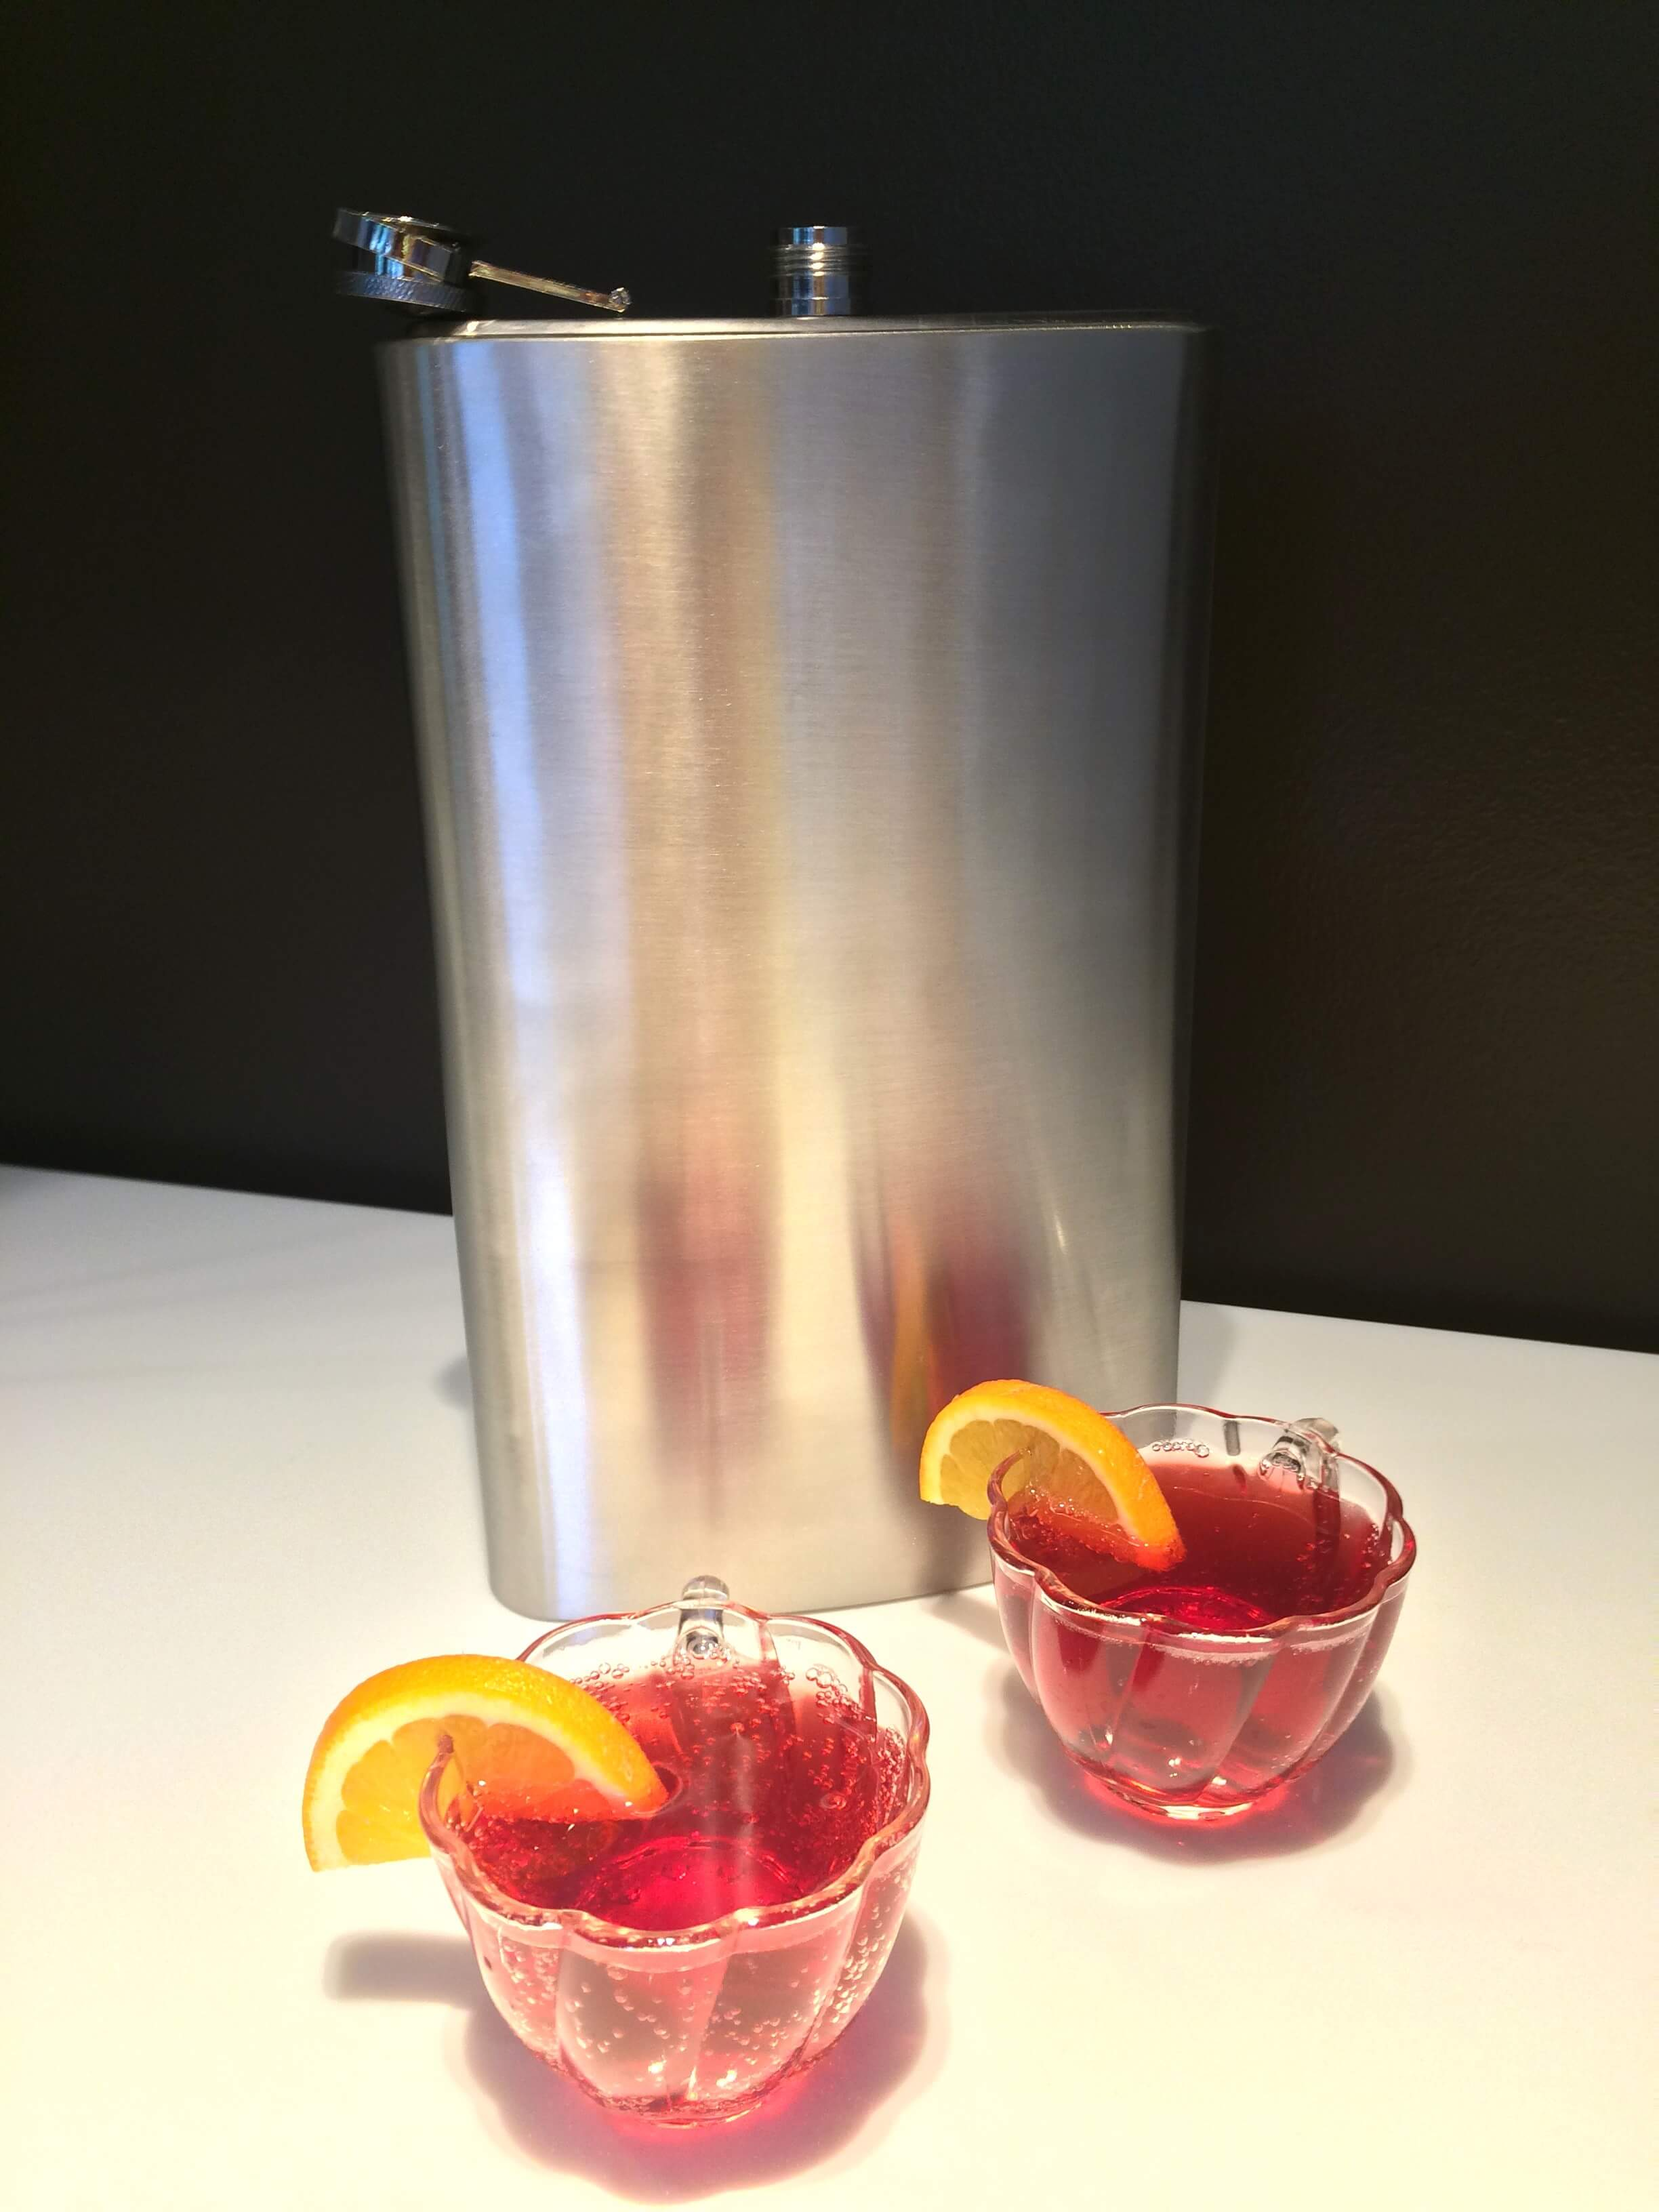 Hooch Punch cocktail from SoBou served in a giant flask